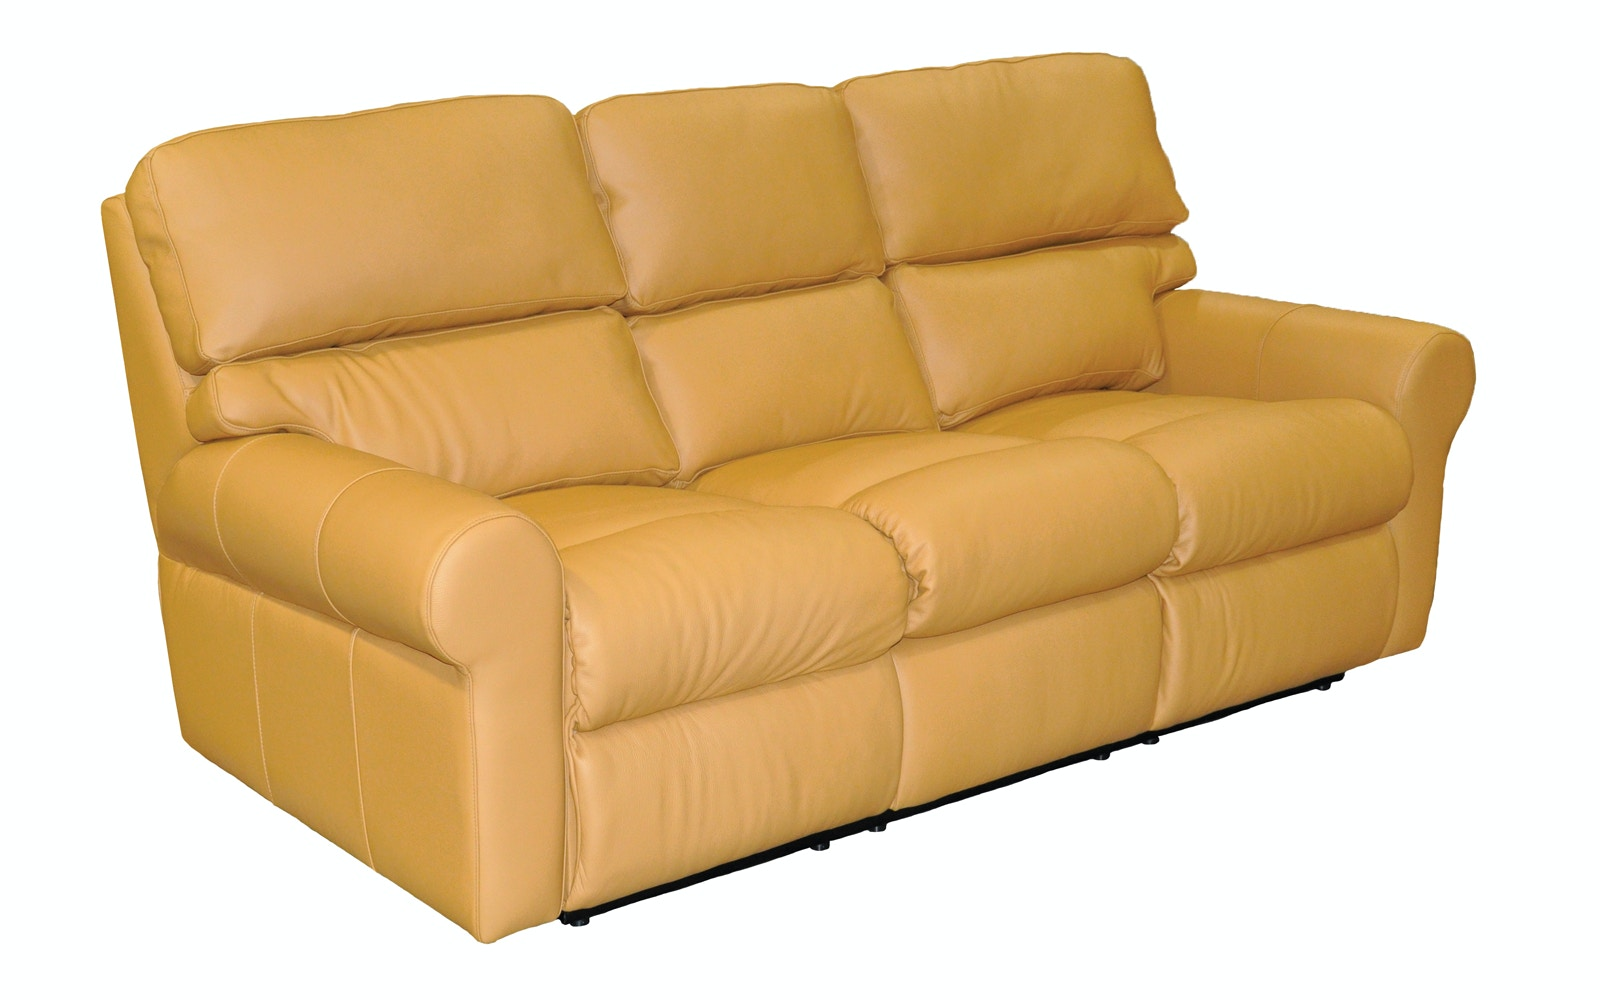 Omnia Leather Brookhaven Reclining Sofa With Chaise Footrest Brookhaven 3C  53111